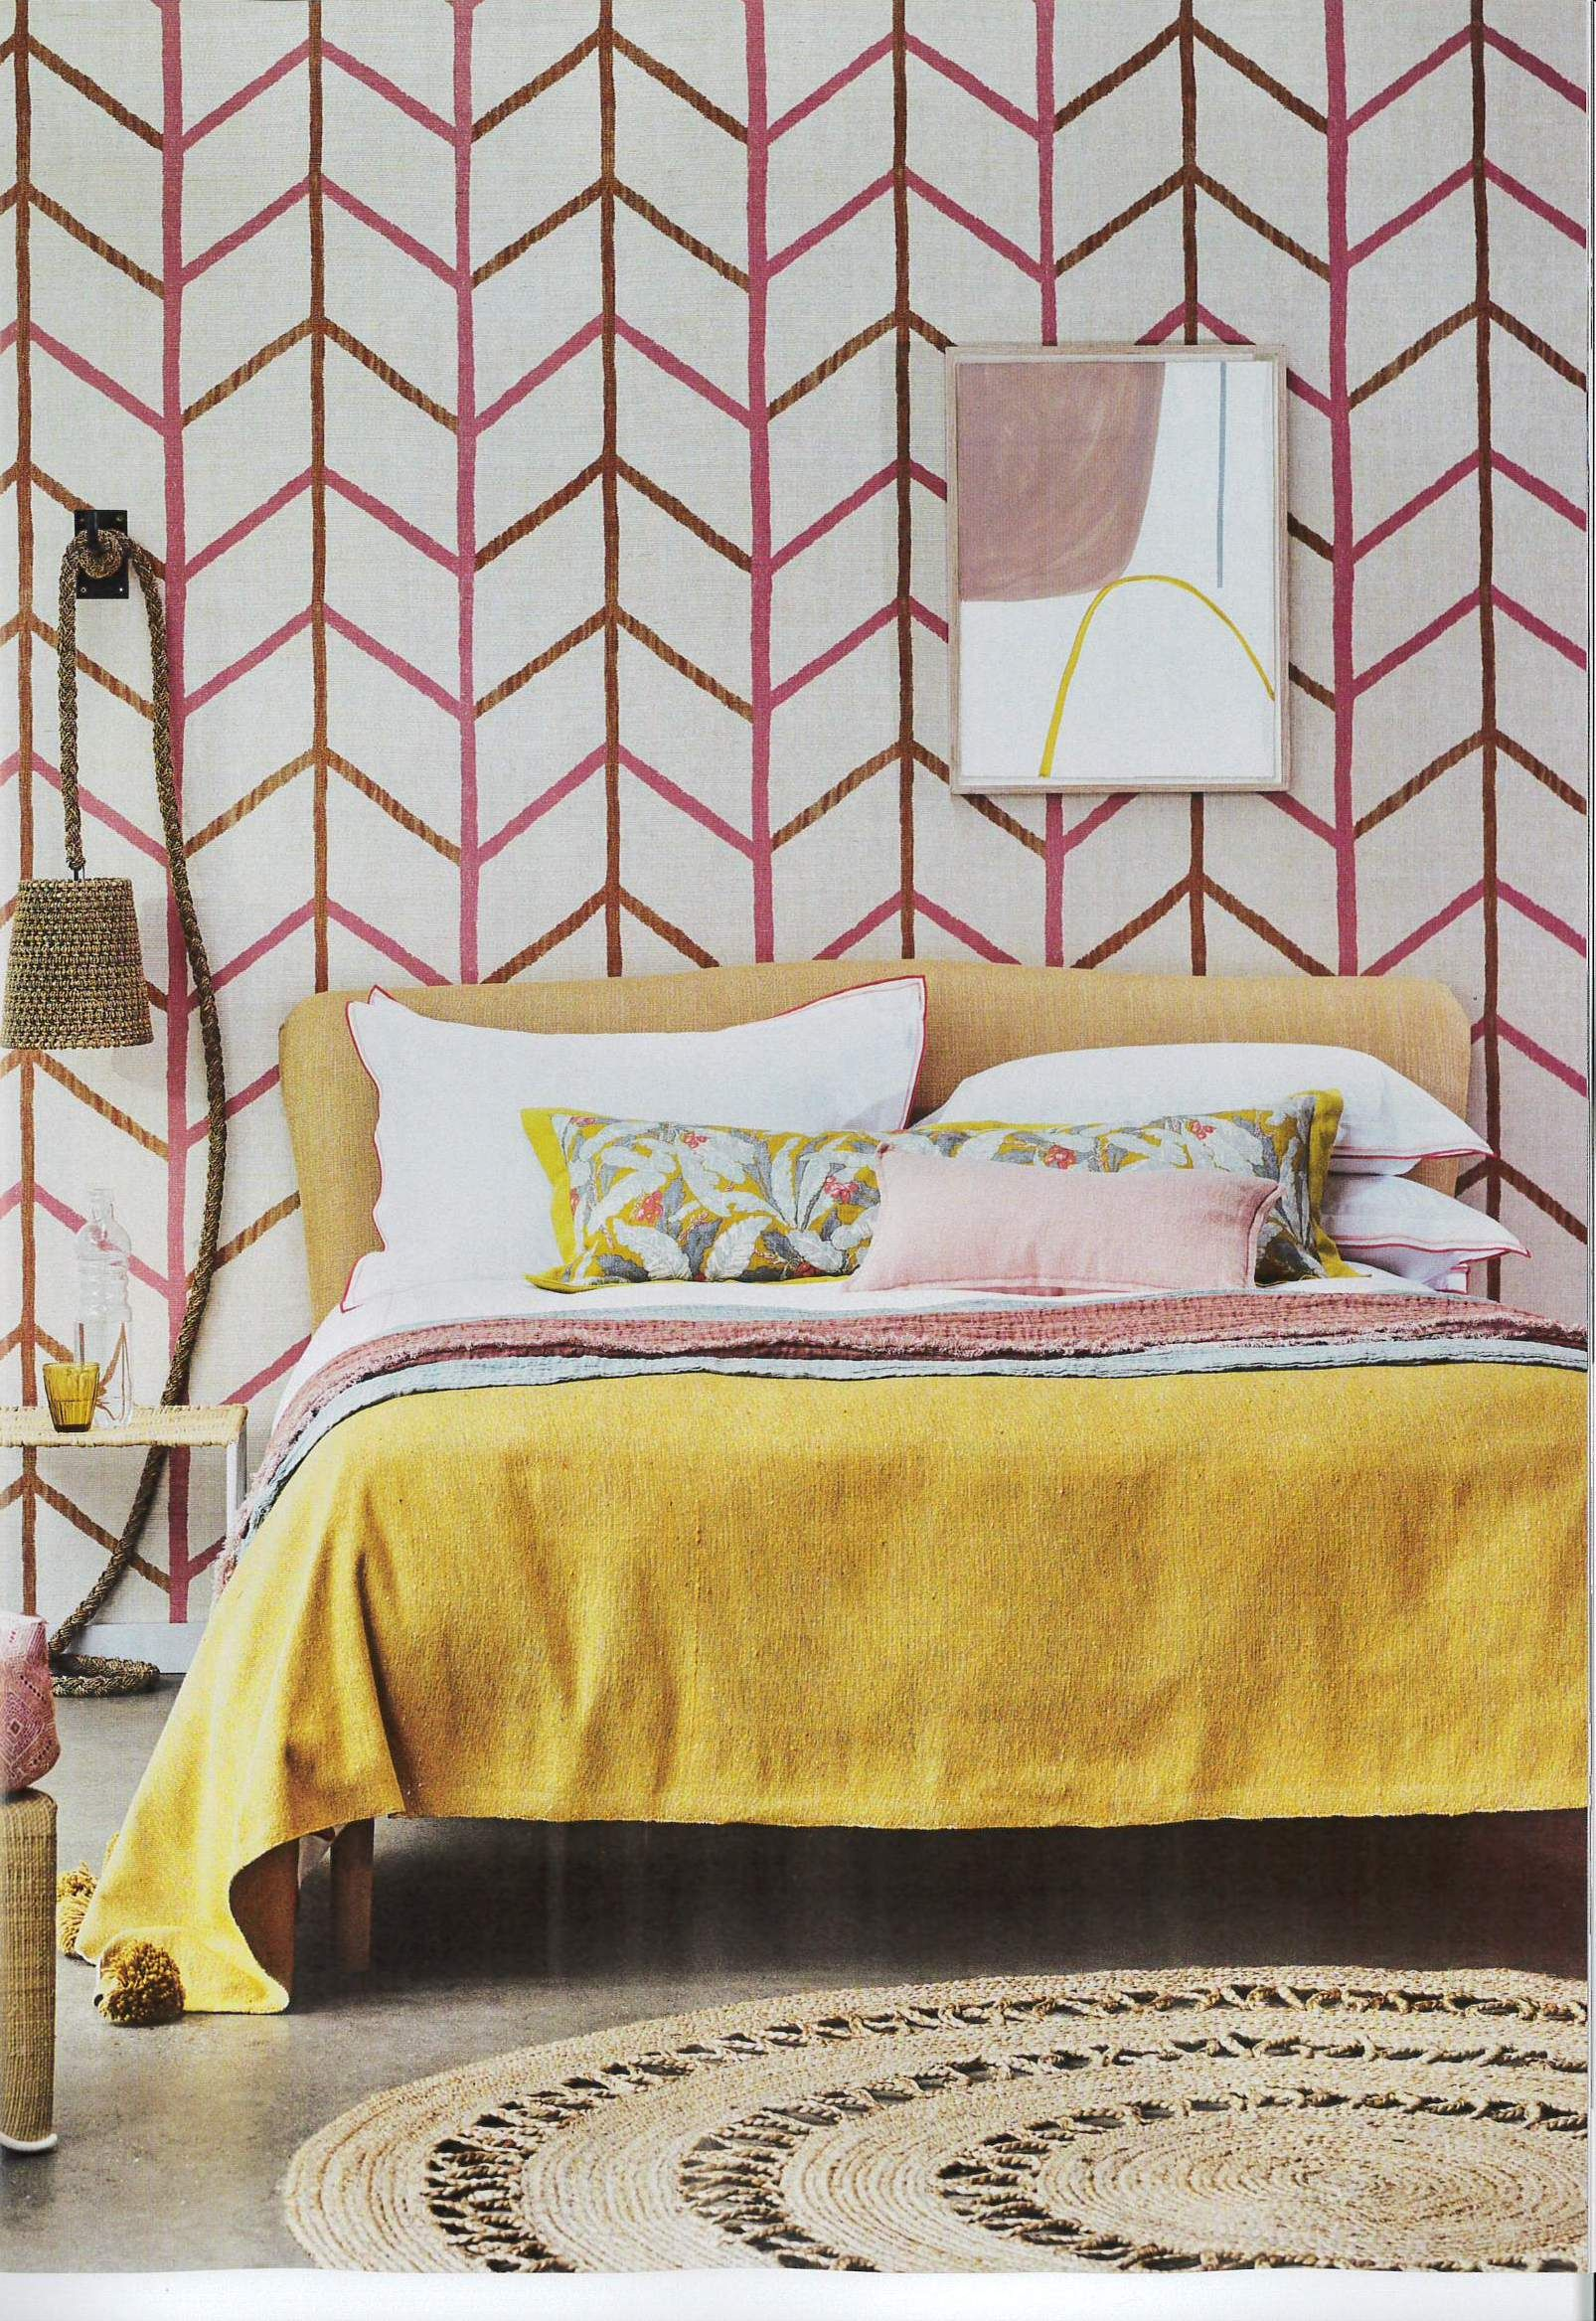 Kit Kemp One Way Grass Cloth Wallpaper in Rose